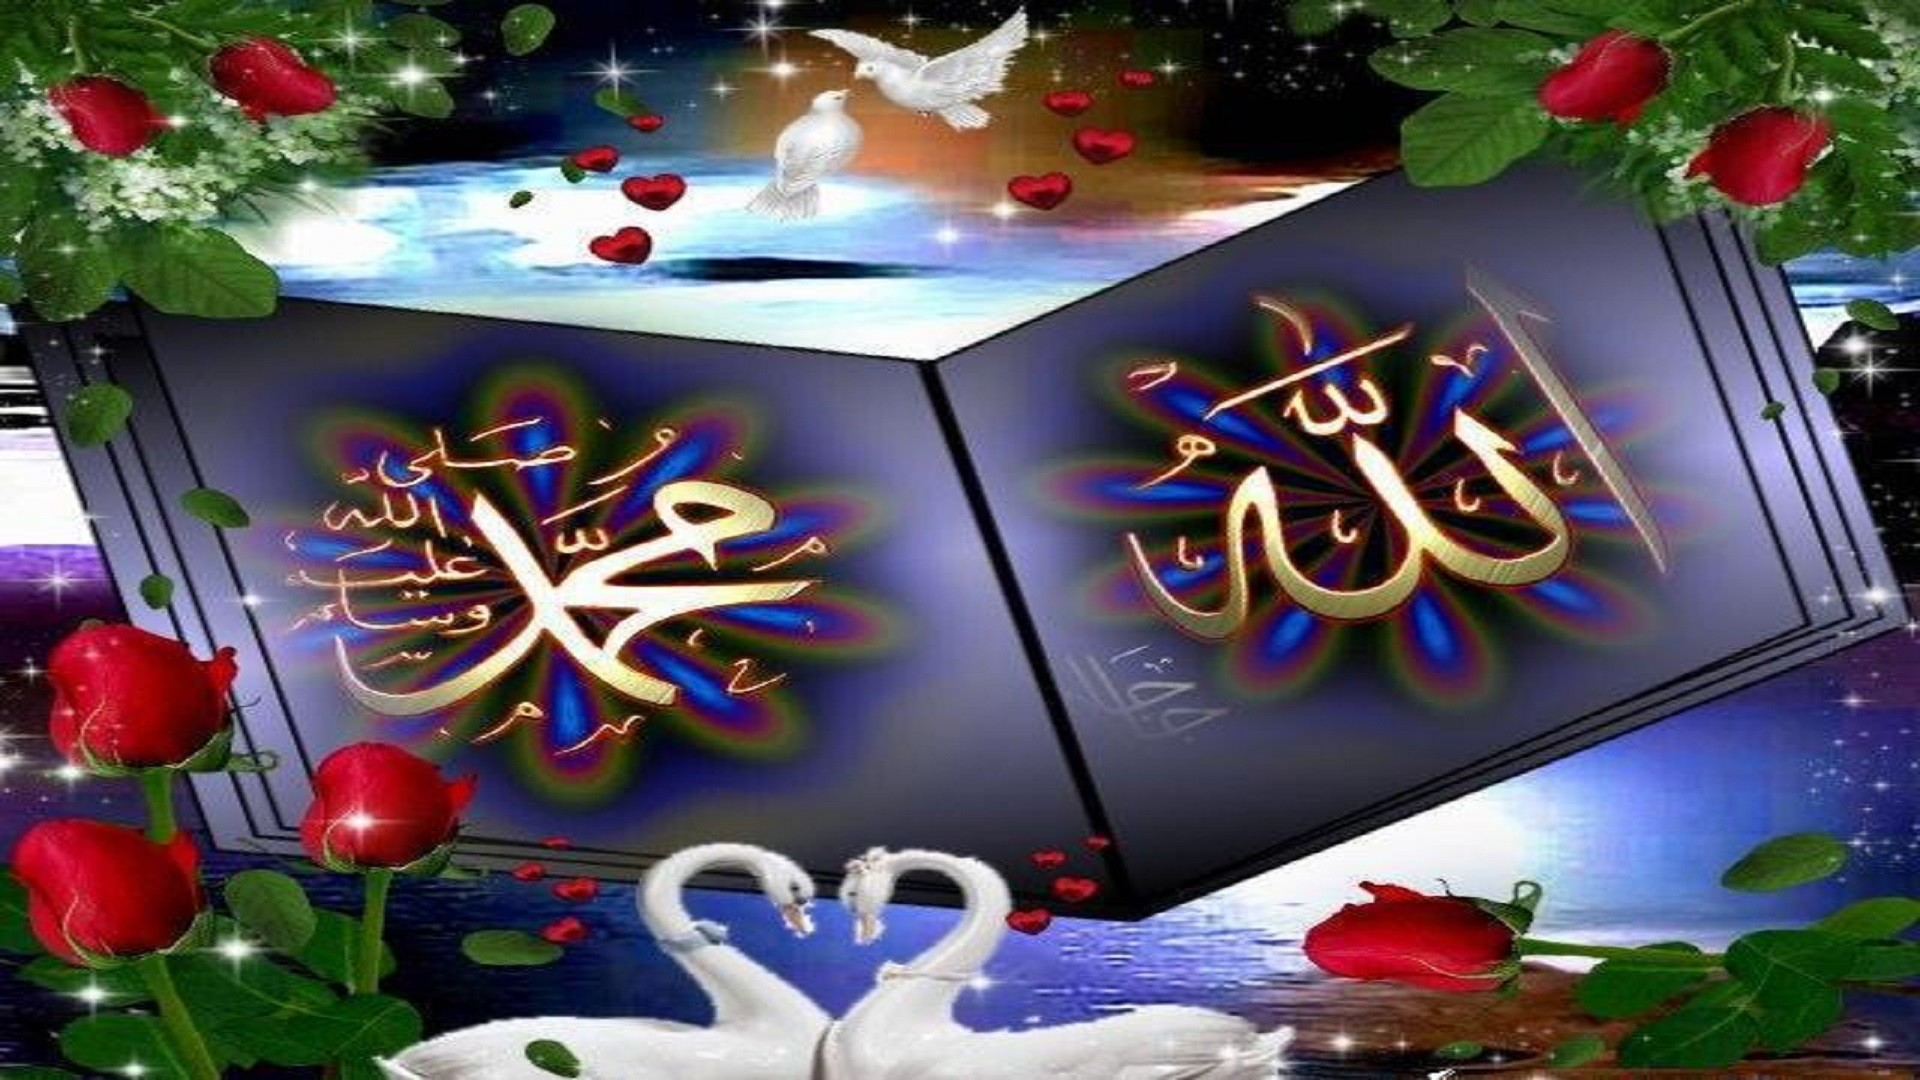 Islamic Wallpapers Hd 2018 51 Images